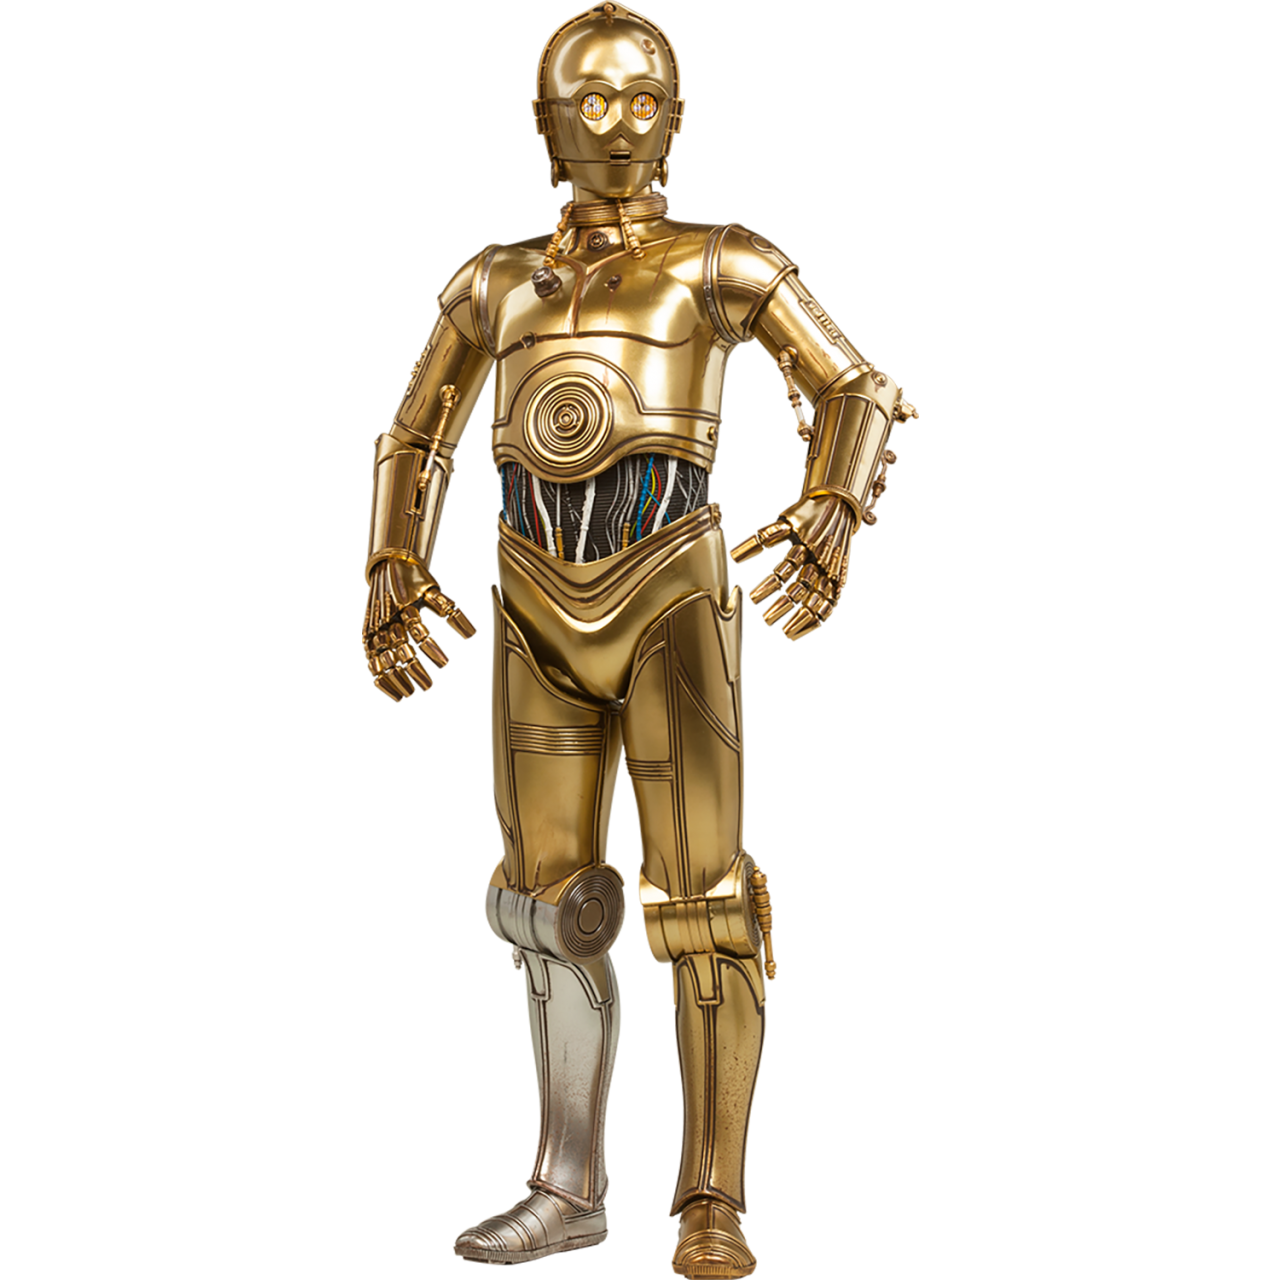 c 3po star wars figure 1 6 scale star wars collectibles de agostini modelspace. Black Bedroom Furniture Sets. Home Design Ideas